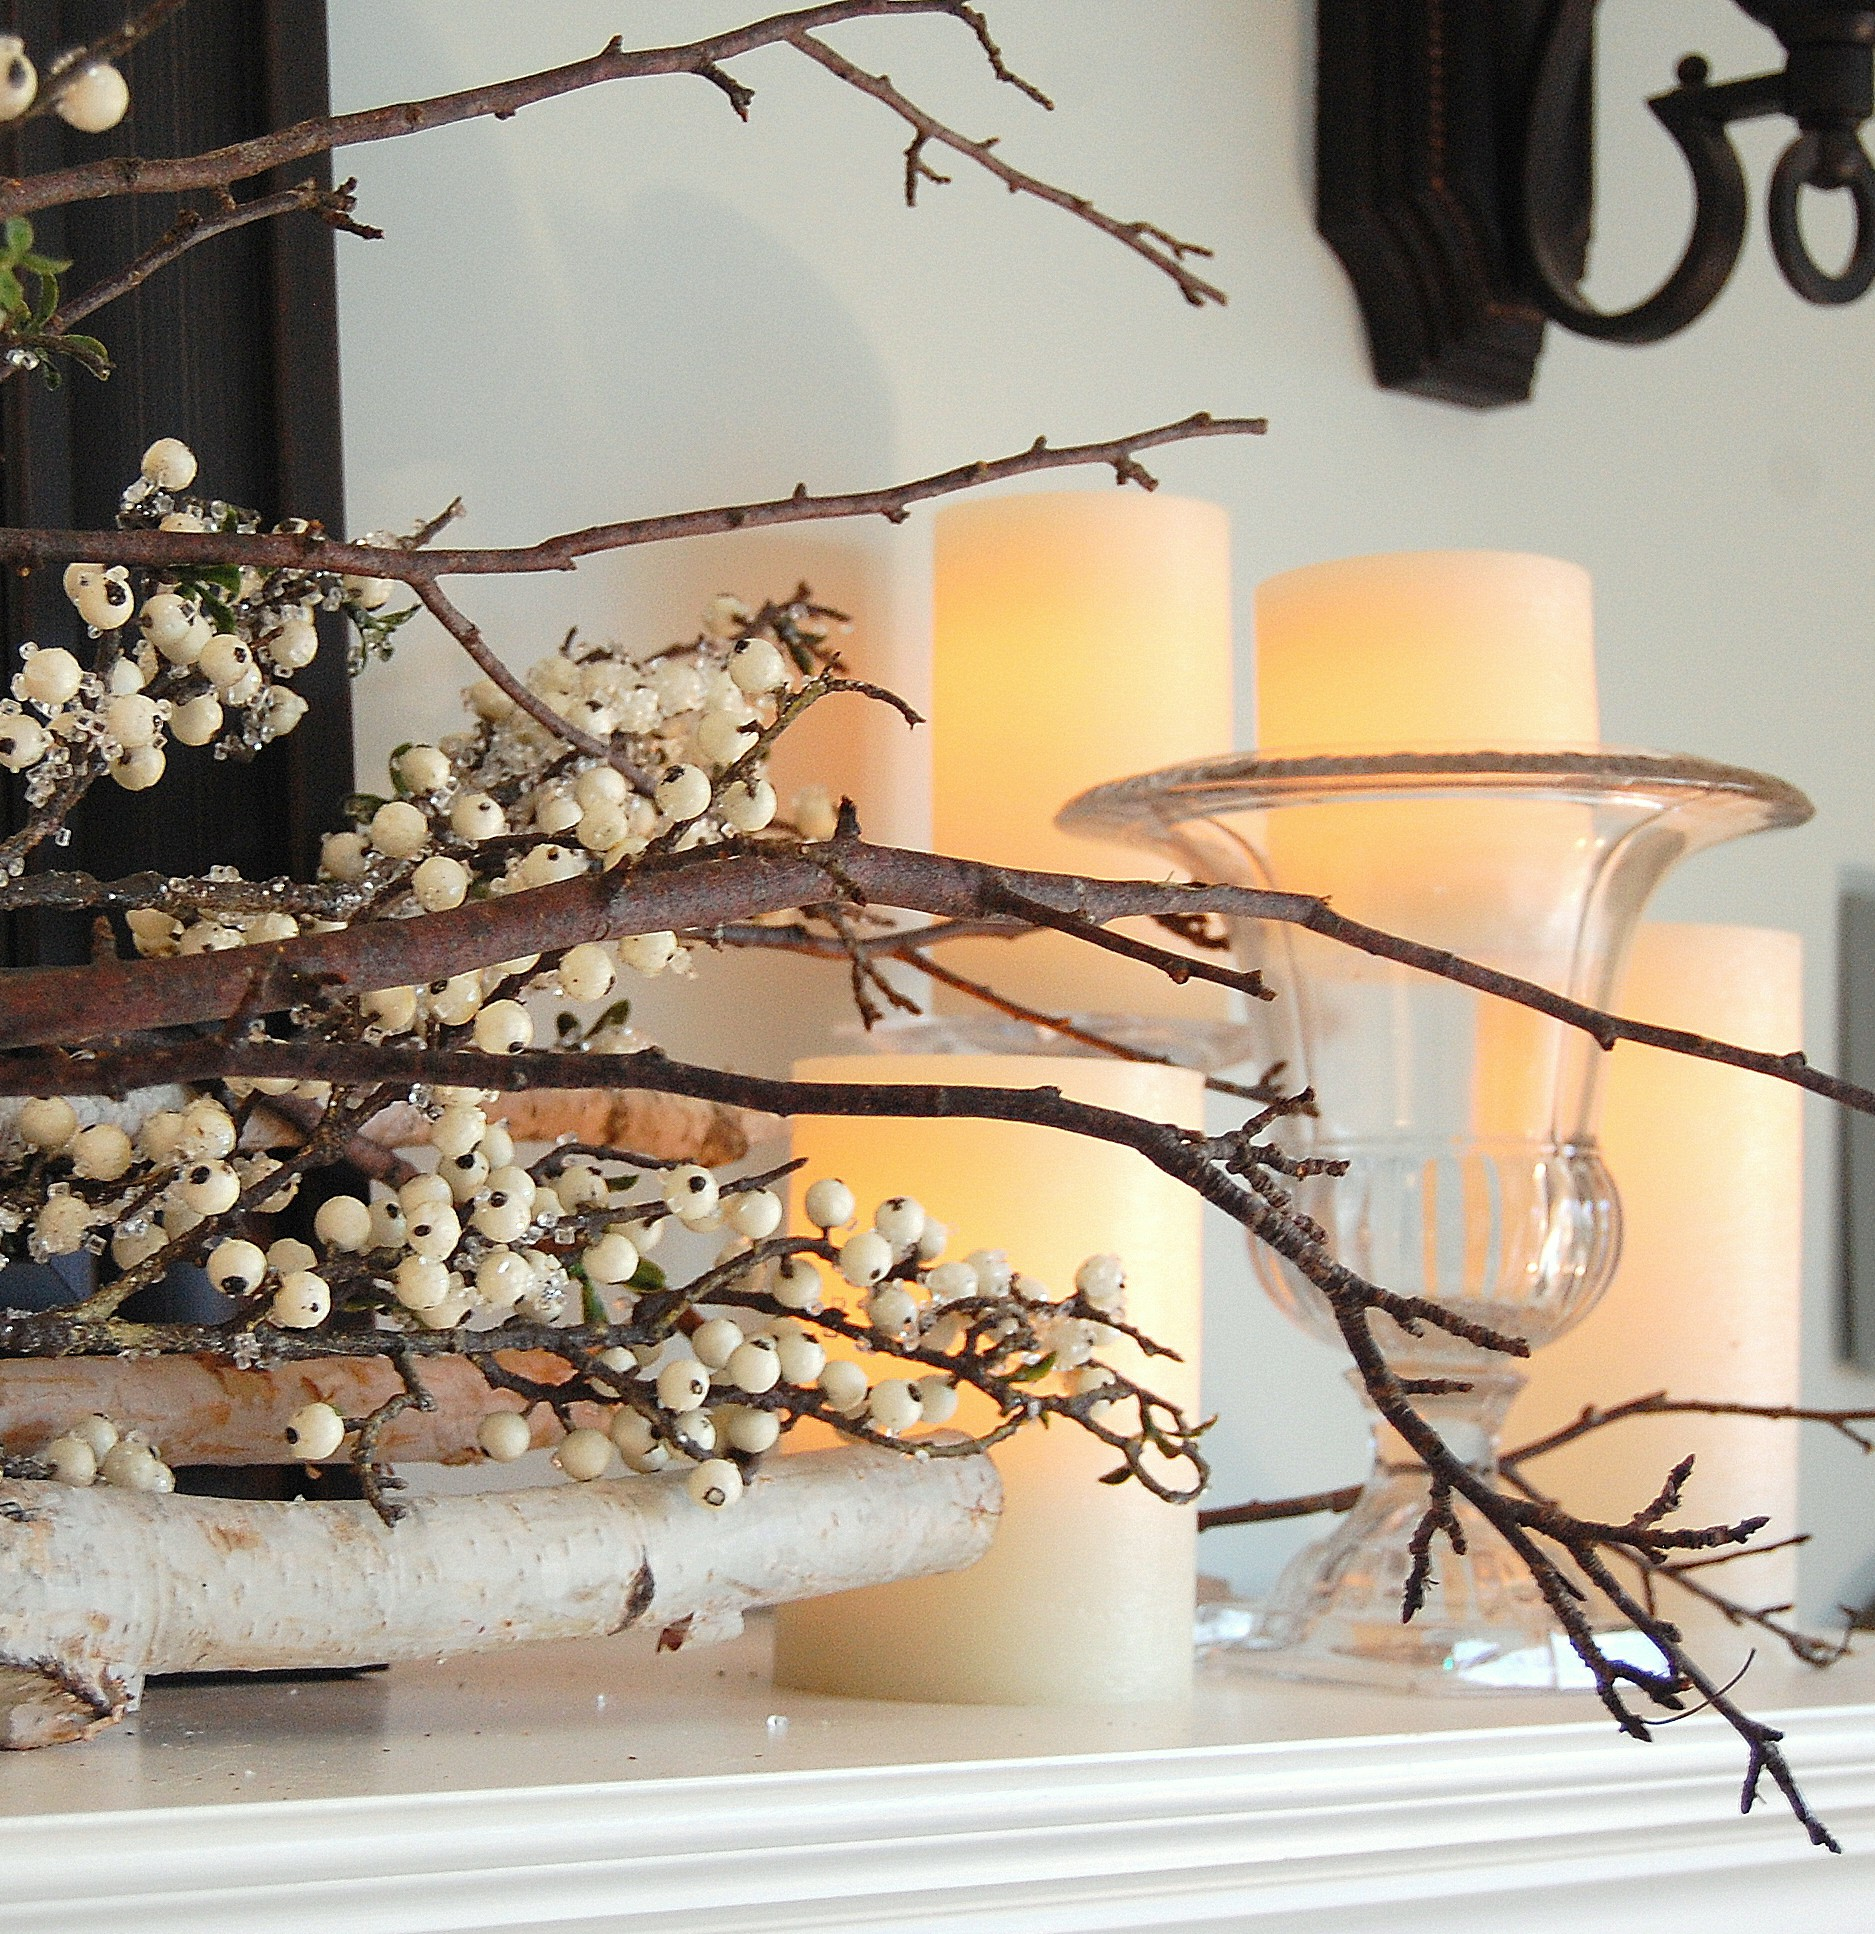 A November Mantel (Late Fall / Pre-Christmas Decorating)